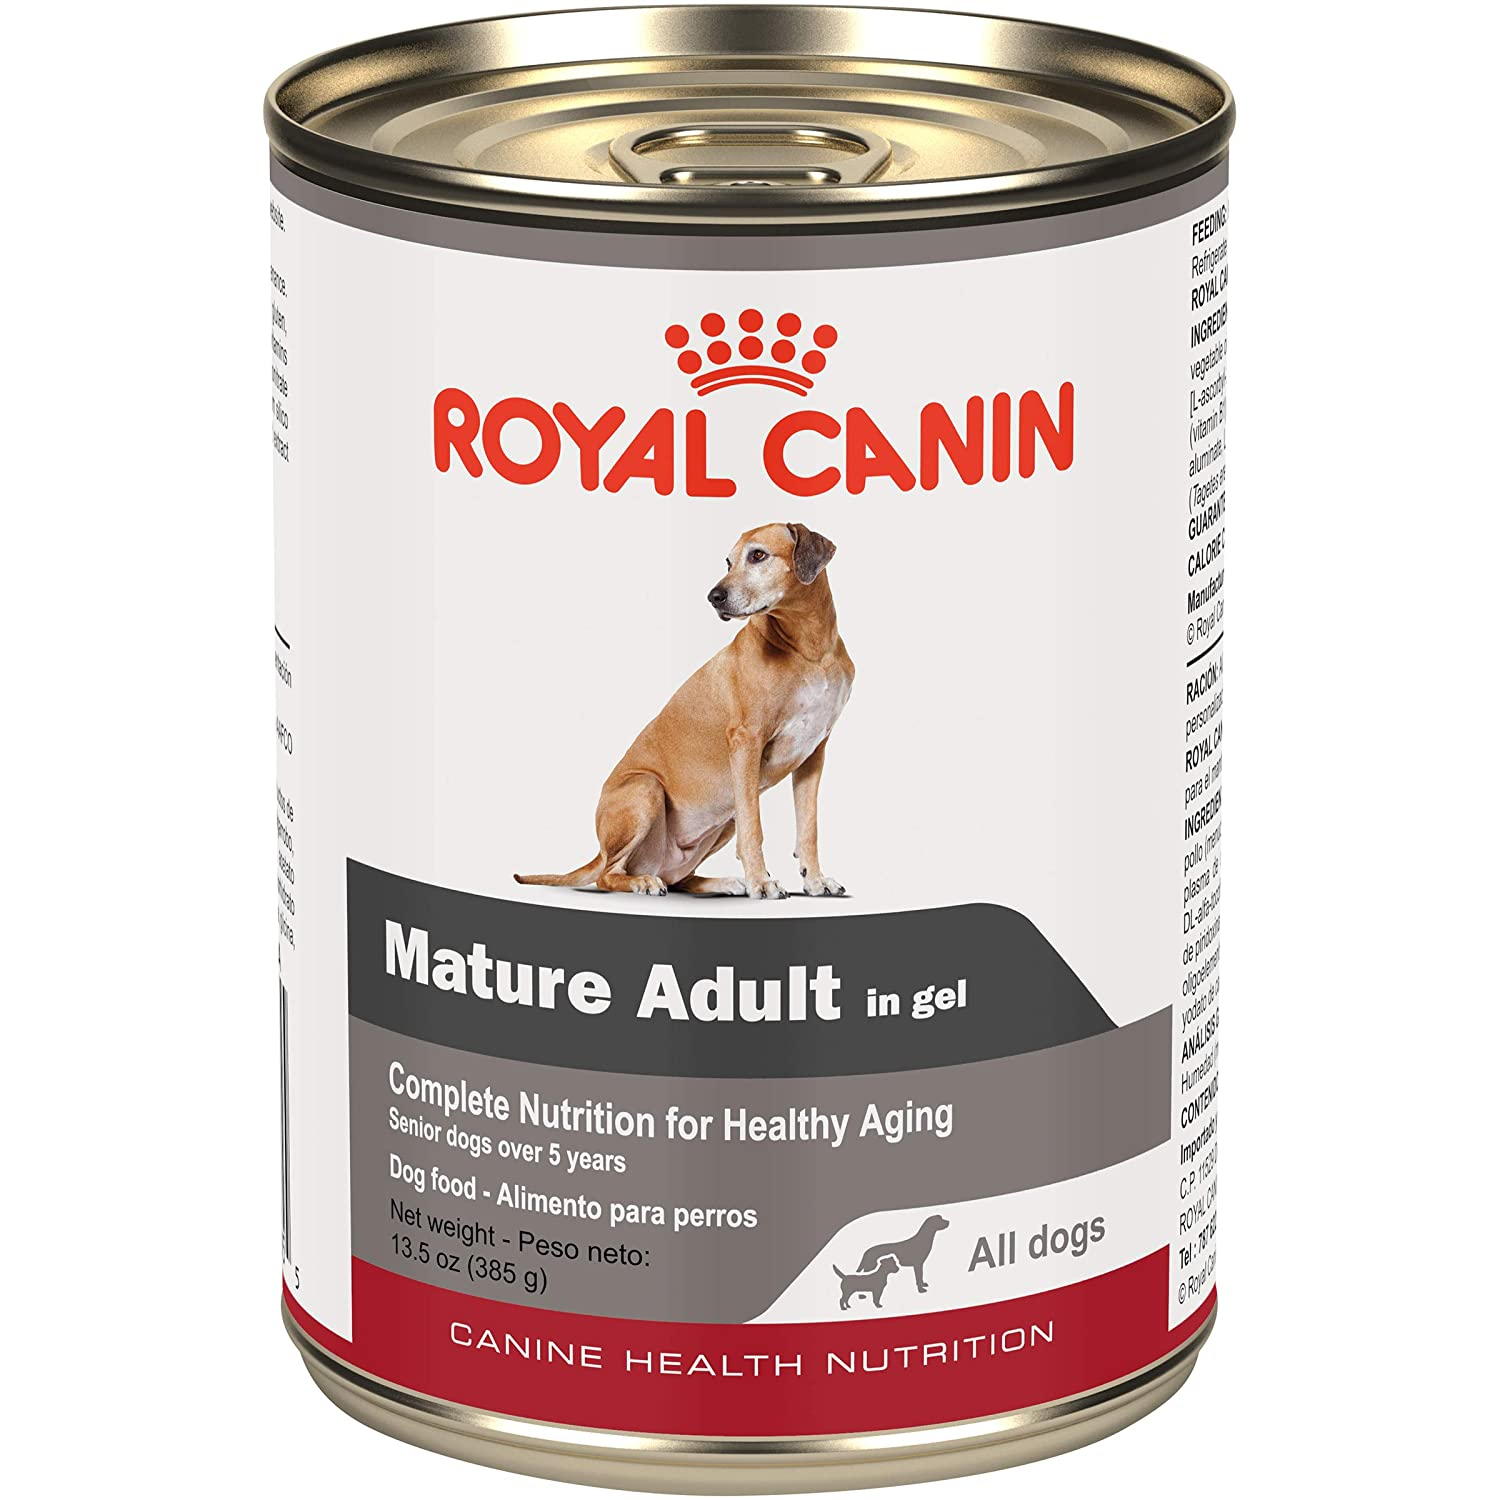 Royal Canin Canine Health Nutrition Mature Adult In Gel Canned Dog Food, 13.5 oz